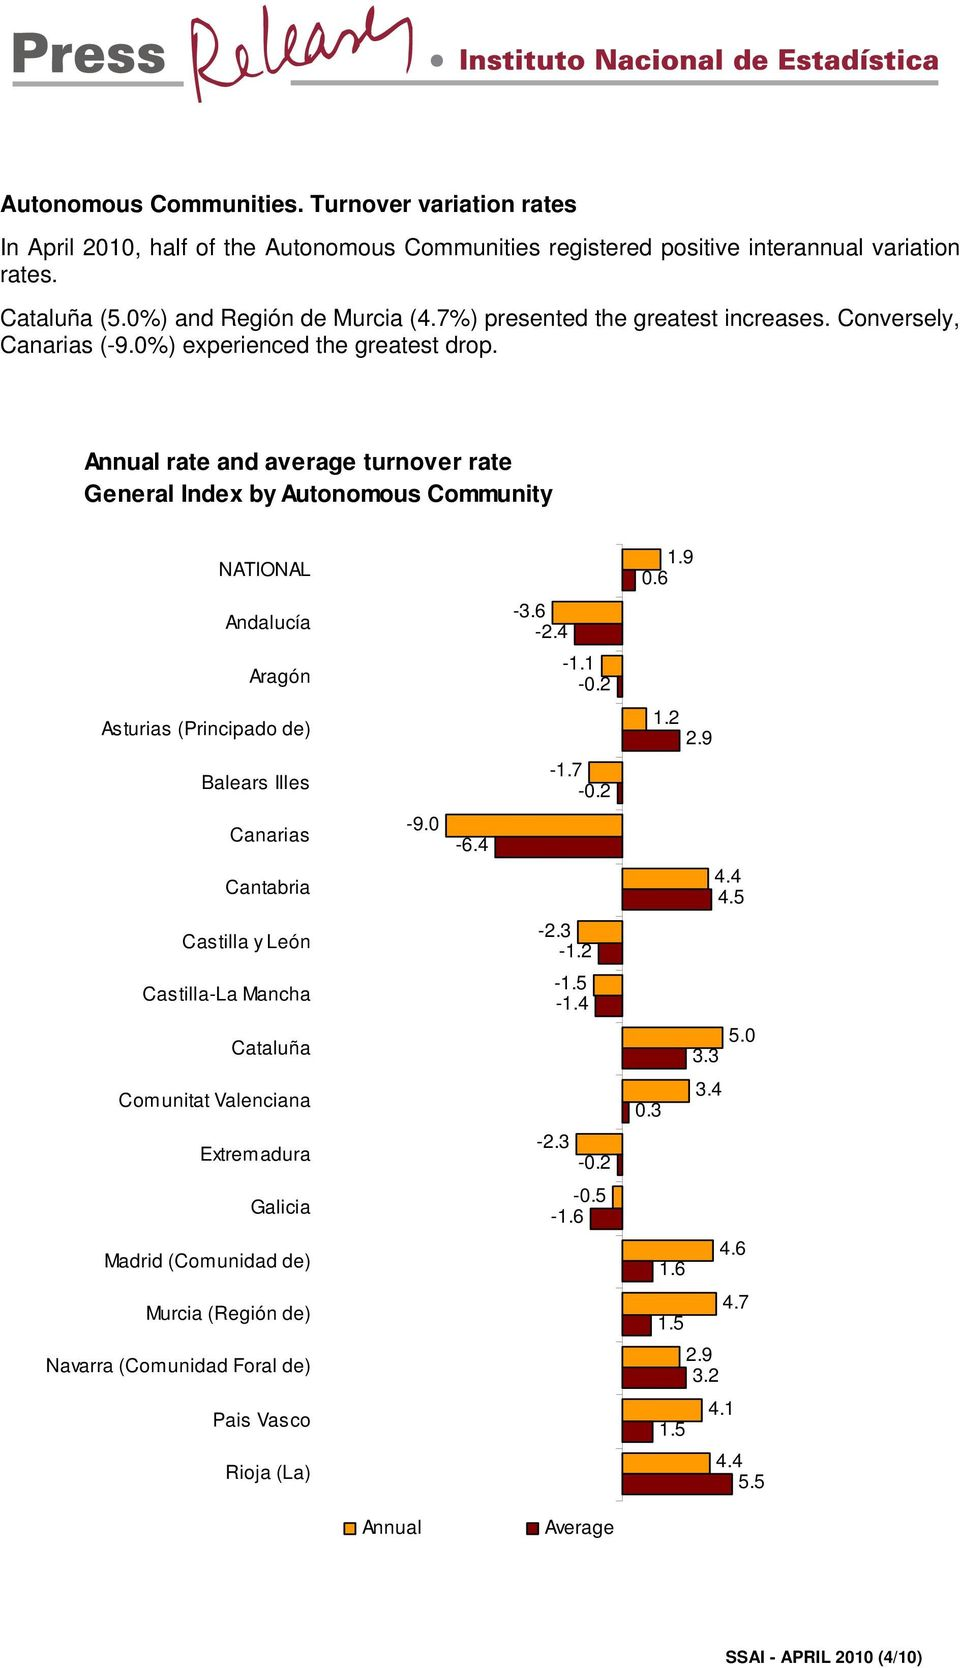 rate and turnover rate General Index by Autonomous Community NATIONAL Andalucía Aragón Asturias (Principado de) Balears Illes Canarias Cantabria Castilla y León Castilla-La Mancha Cataluña